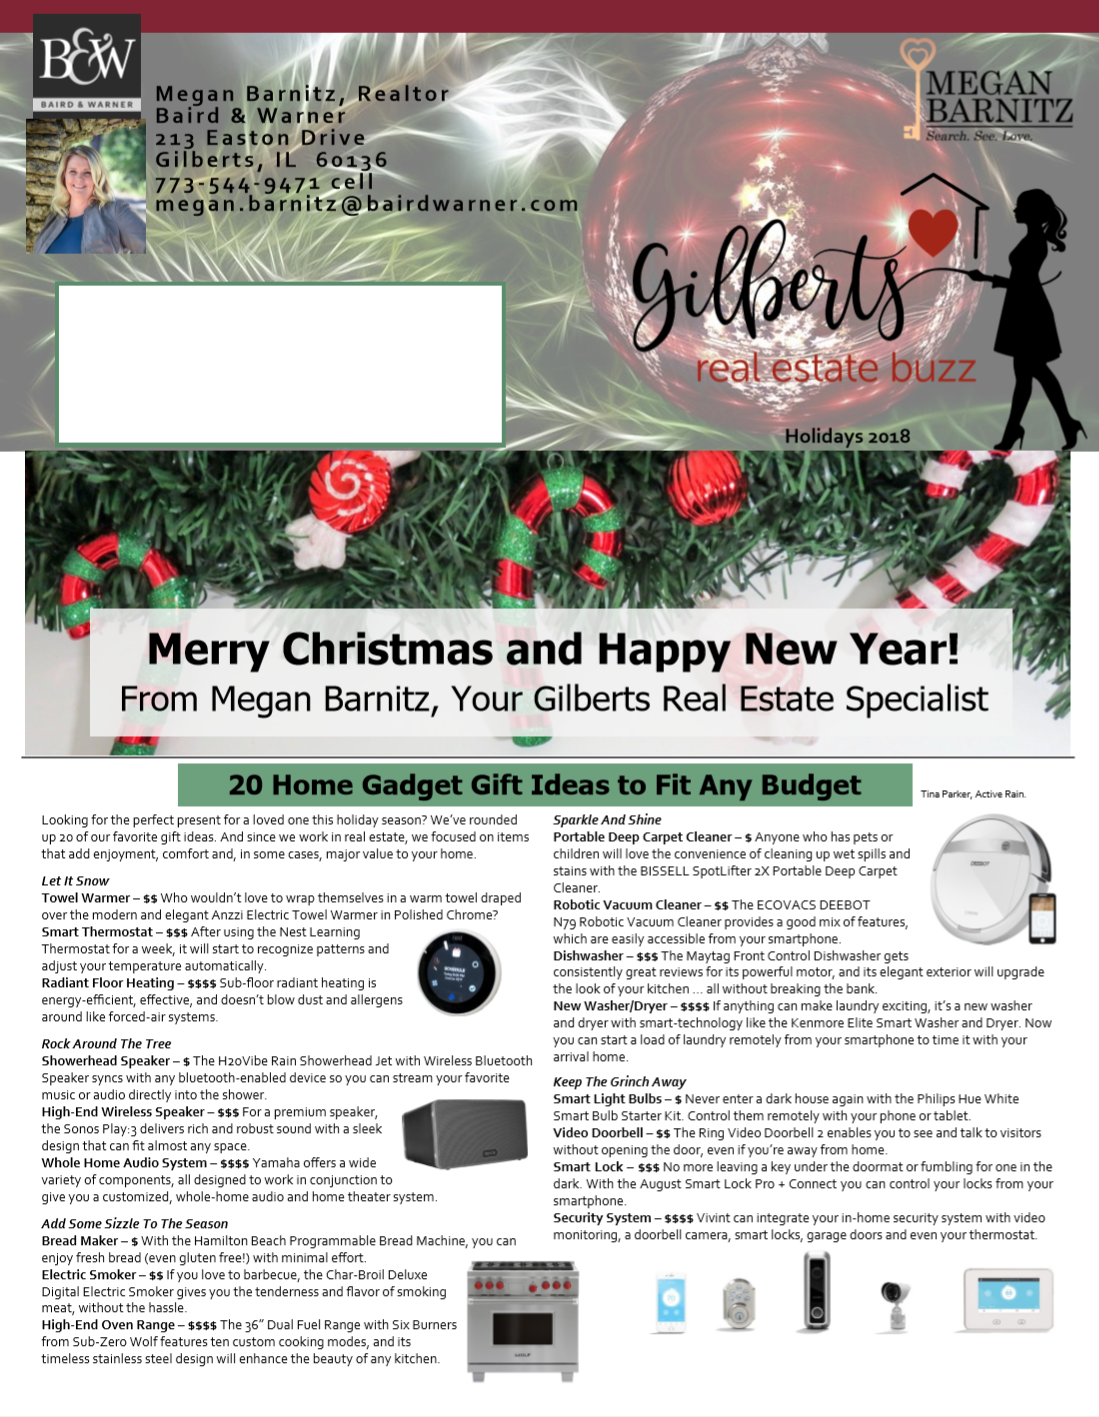 Newsletter for real estate agent in Chicago